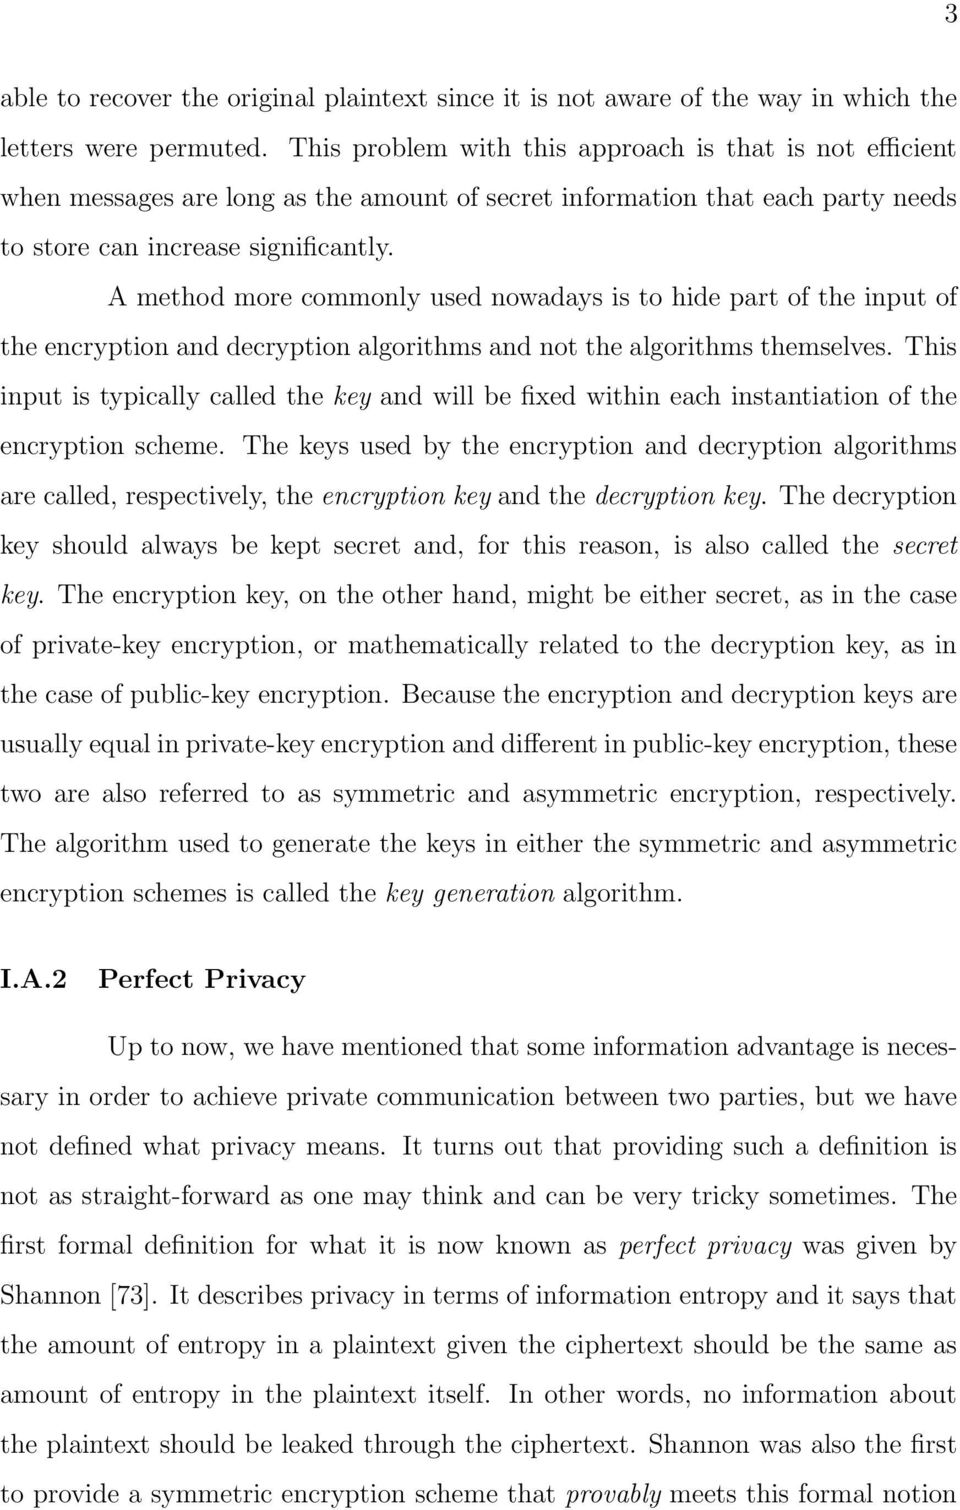 A method more commonly used nowadays is to hide part of the input of the encryption and decryption algorithms and not the algorithms themselves.